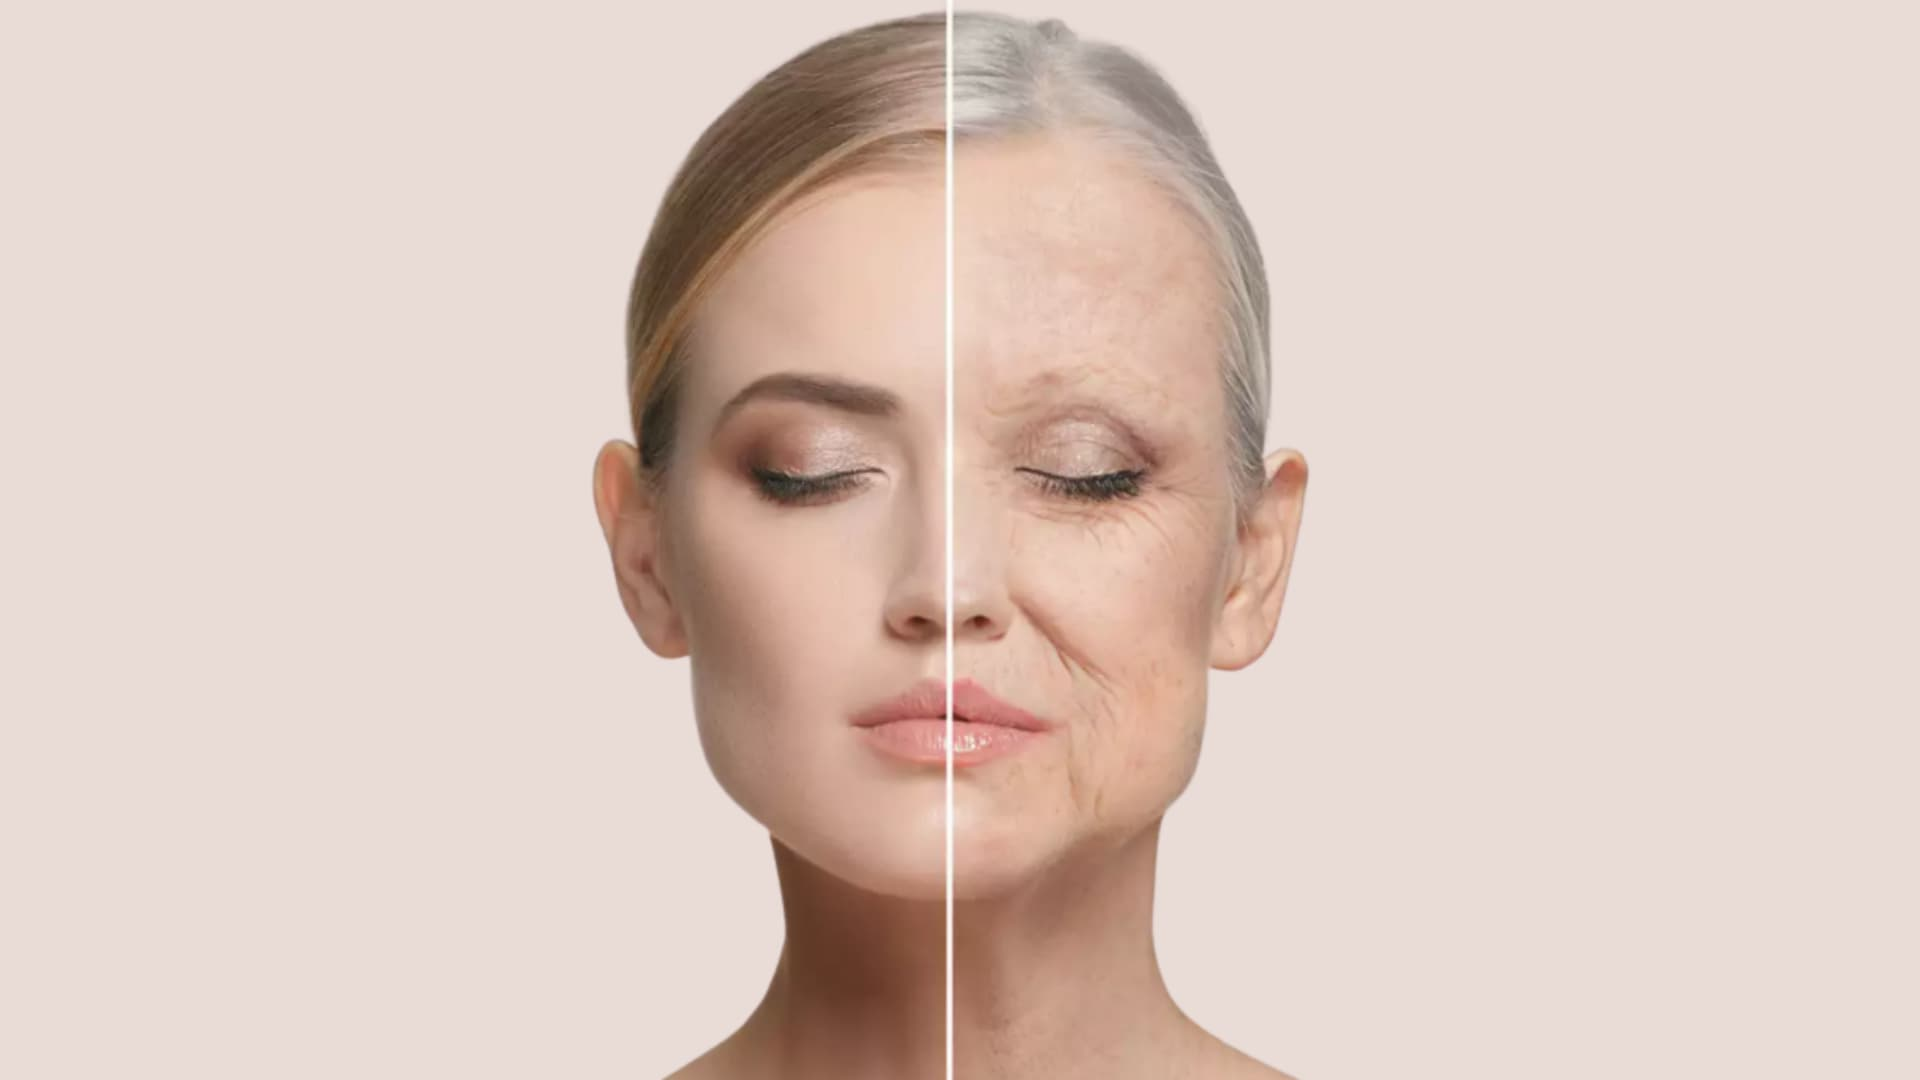 To avoid signs of ageing